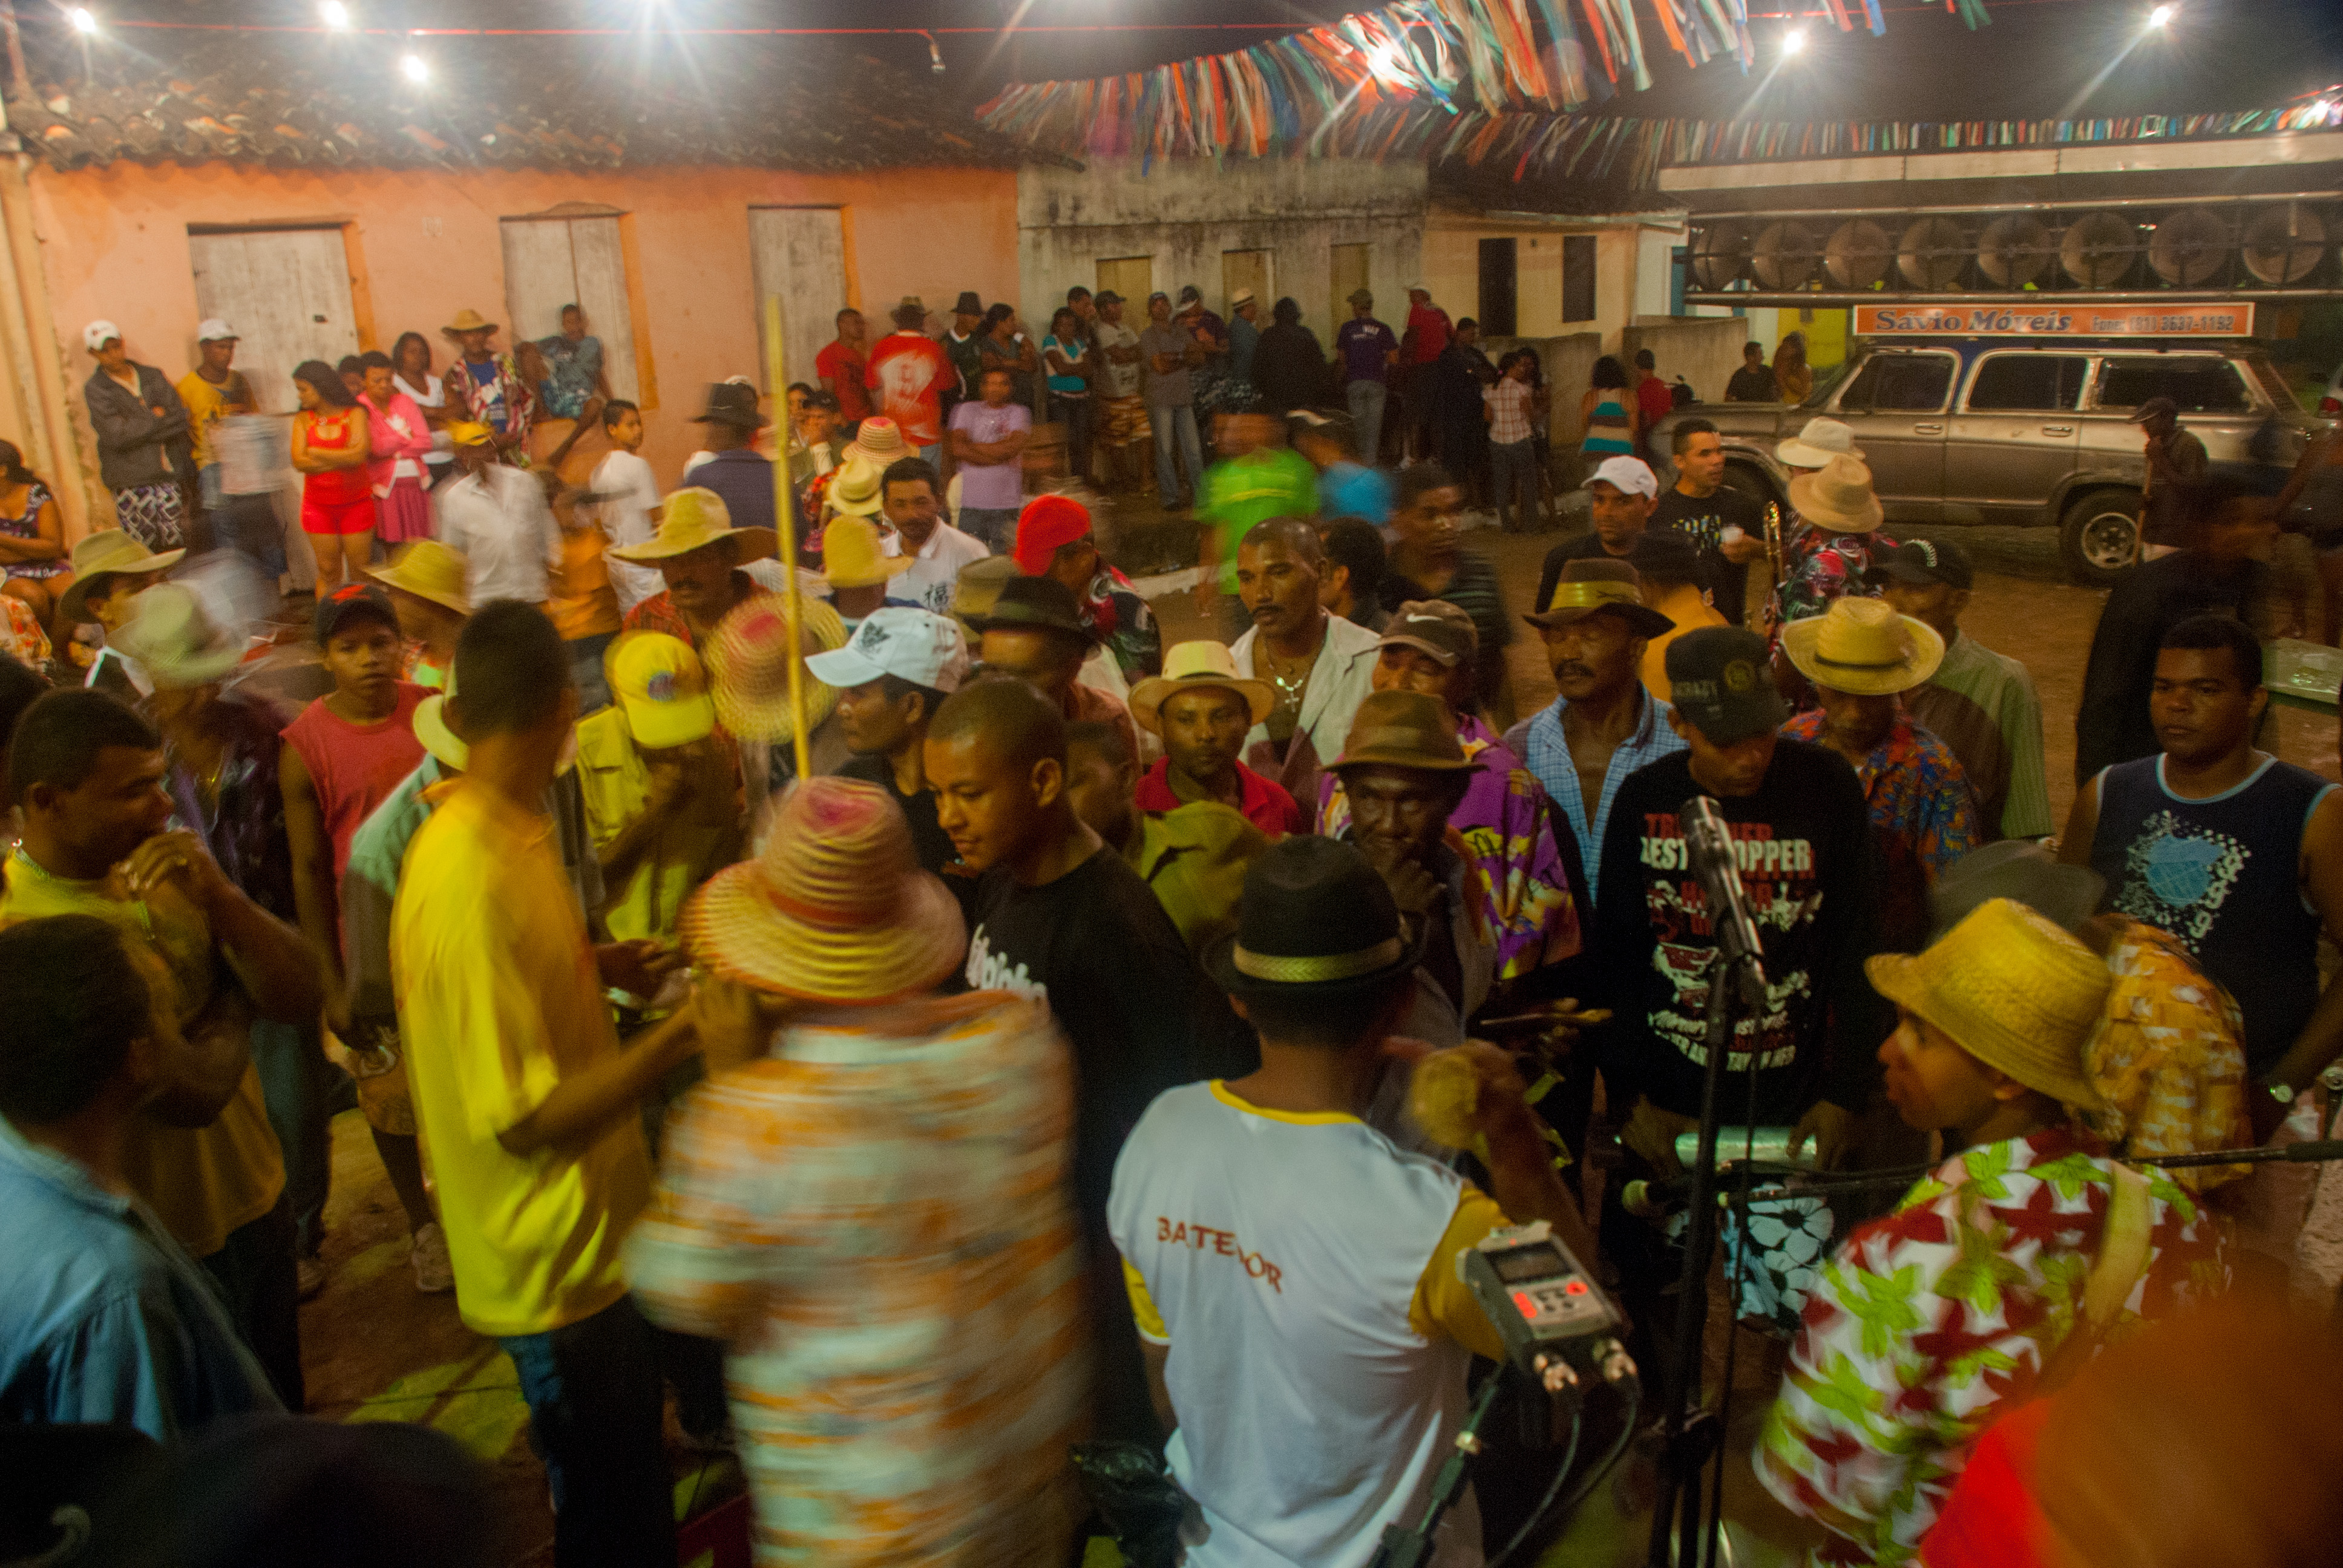 public security versus cultural inclusion the struggle of public security versus cultural inclusion the struggle of maracatu de baque solto in pernambuco